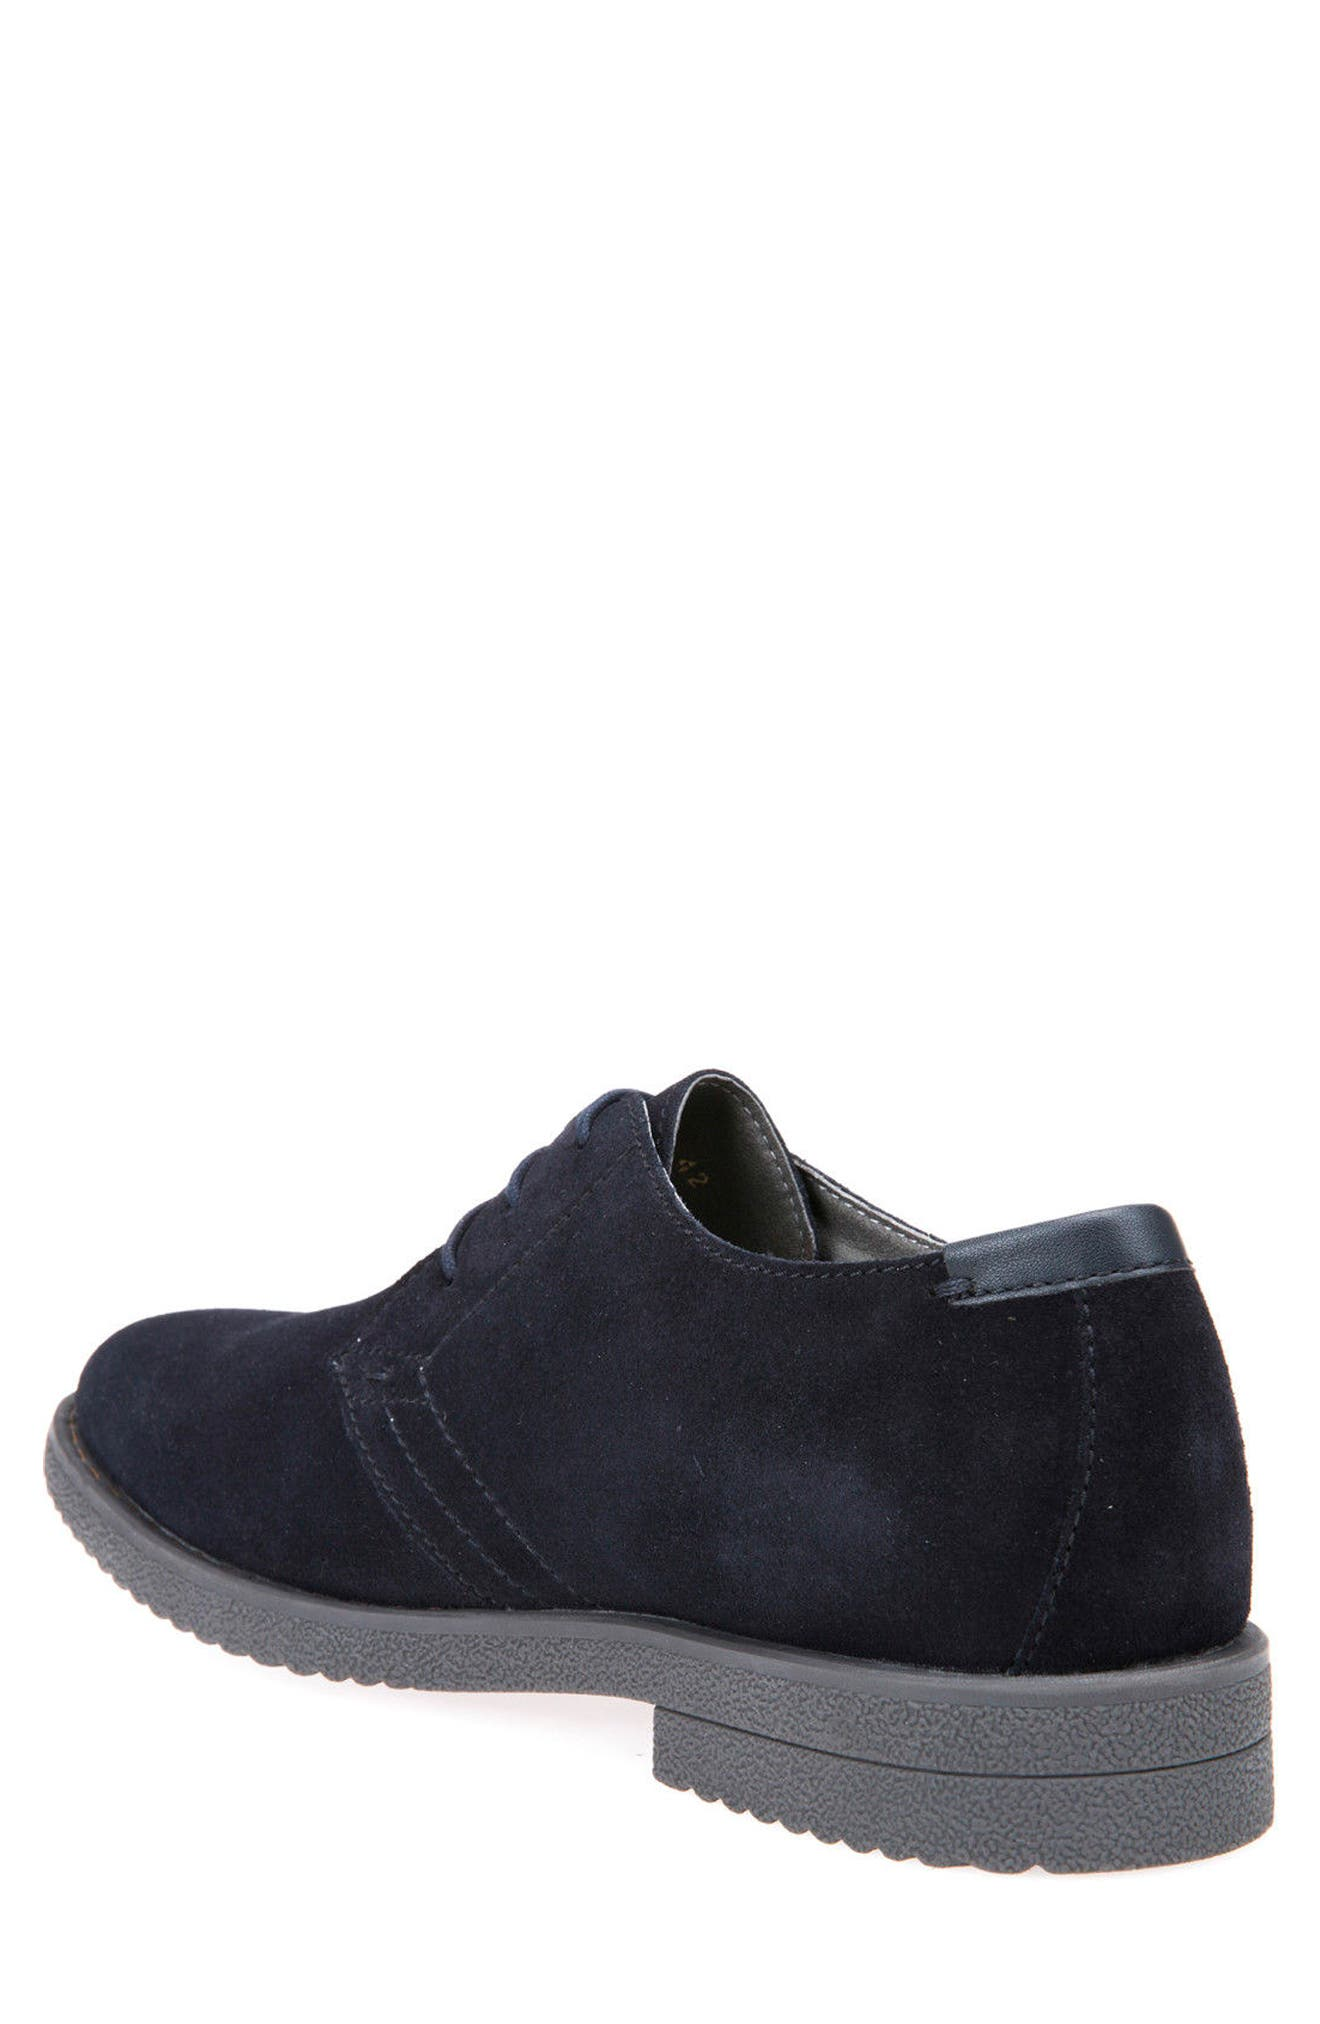 Alternate Image 2  - Geox Brandled Buck Shoe (Men)